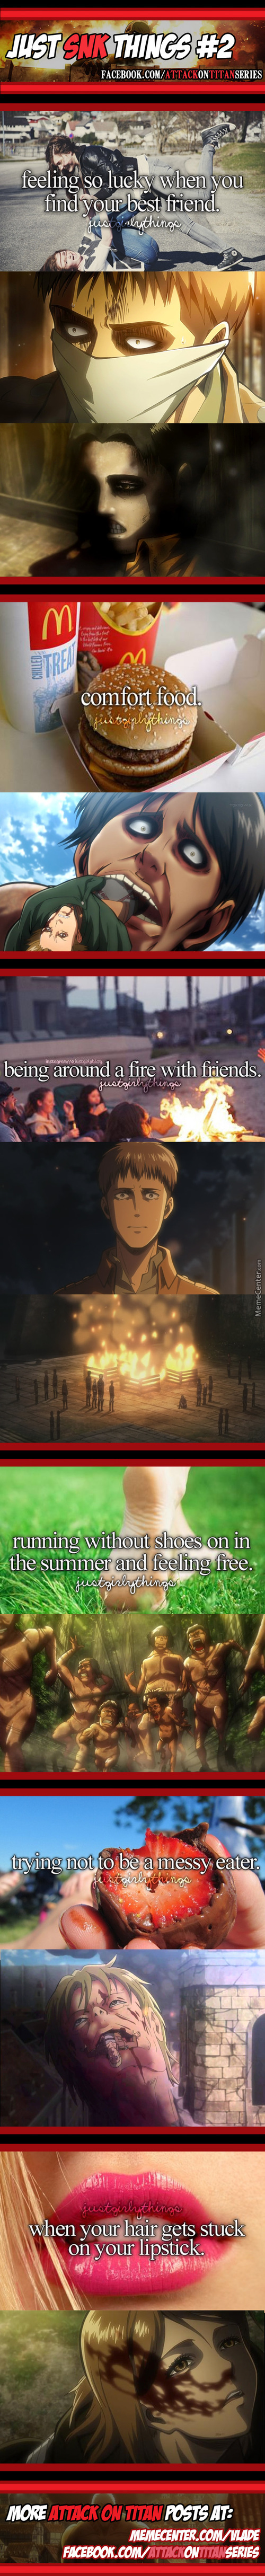 Just Snk Things #2